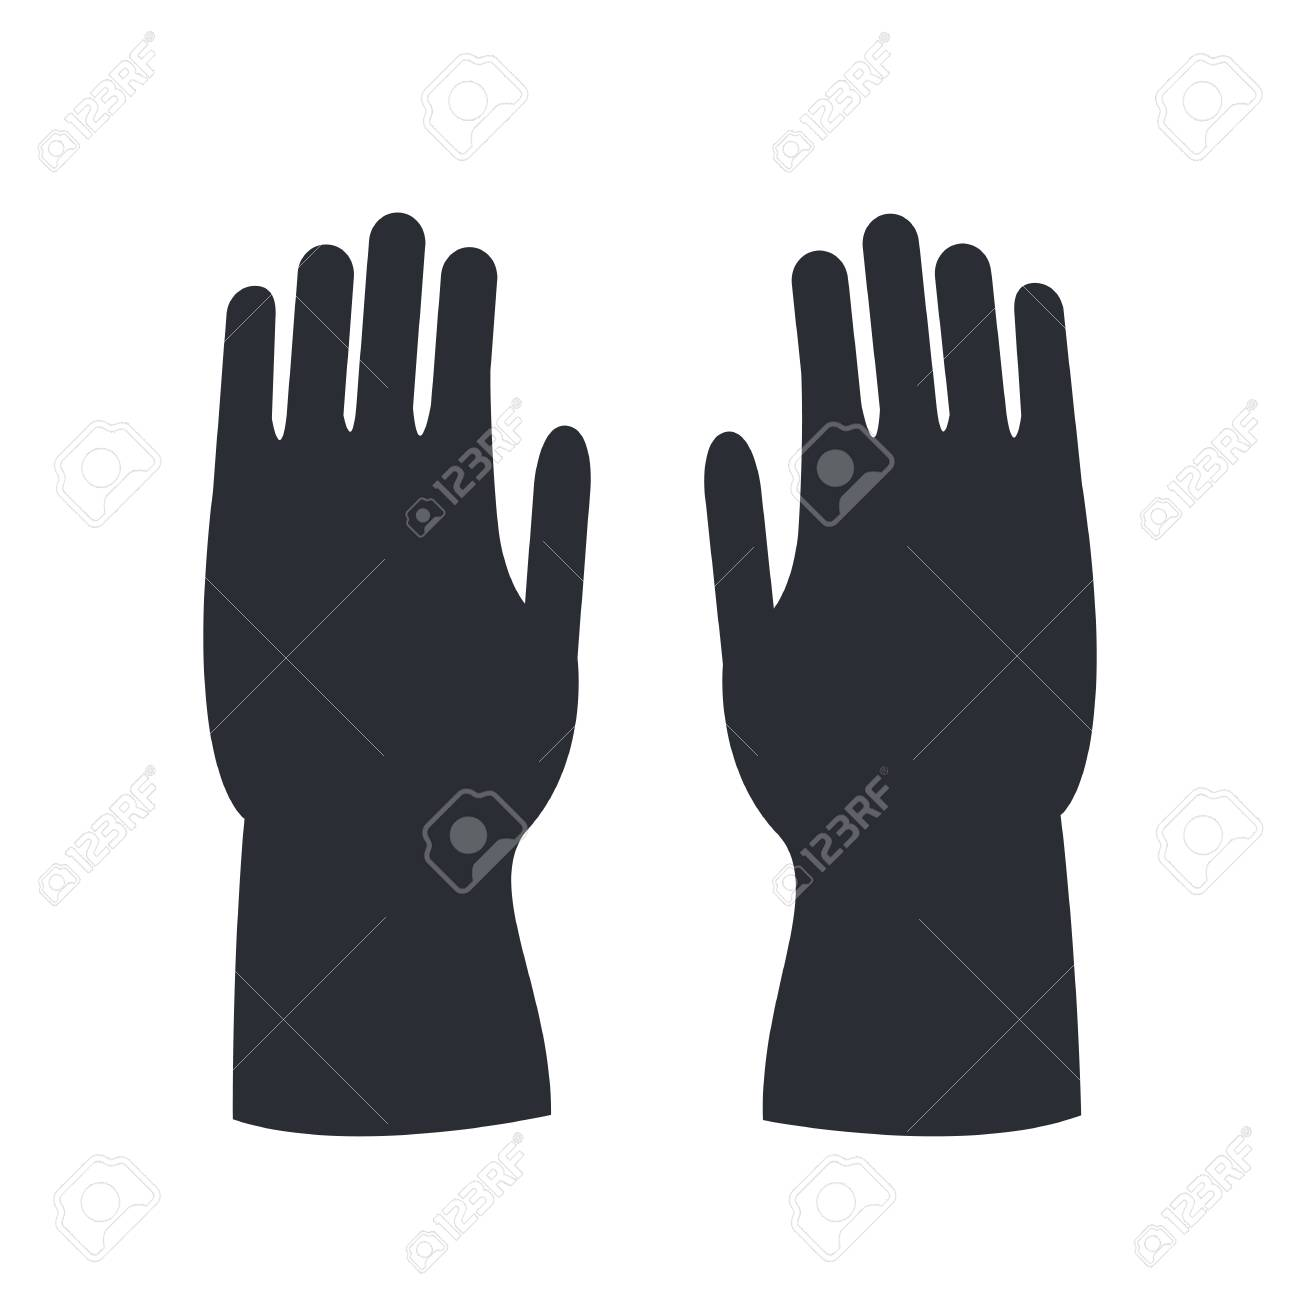 fire protective rubber gloves silhouette isolated on white human